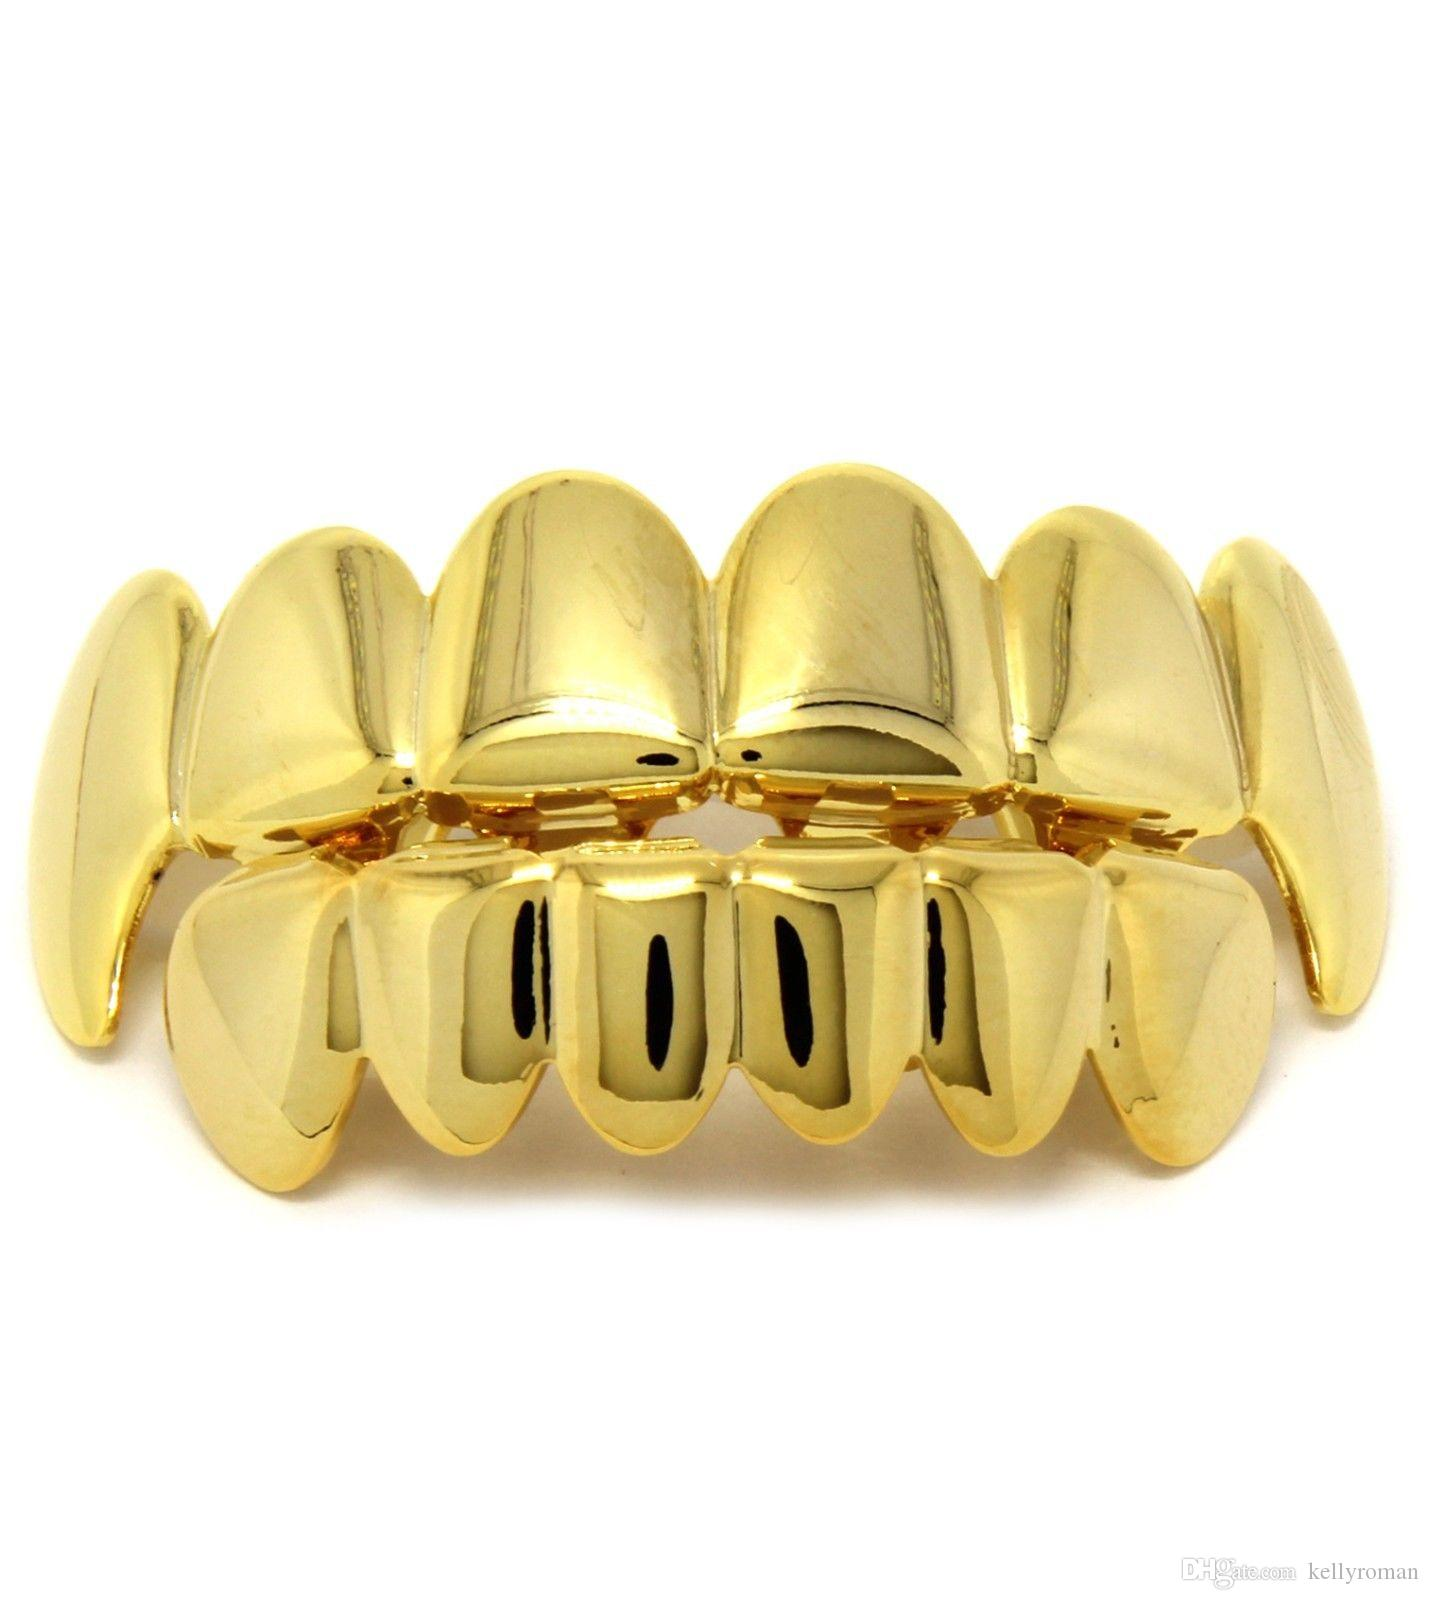 tri jewelry chevron fashion with color gold link stores bracelet